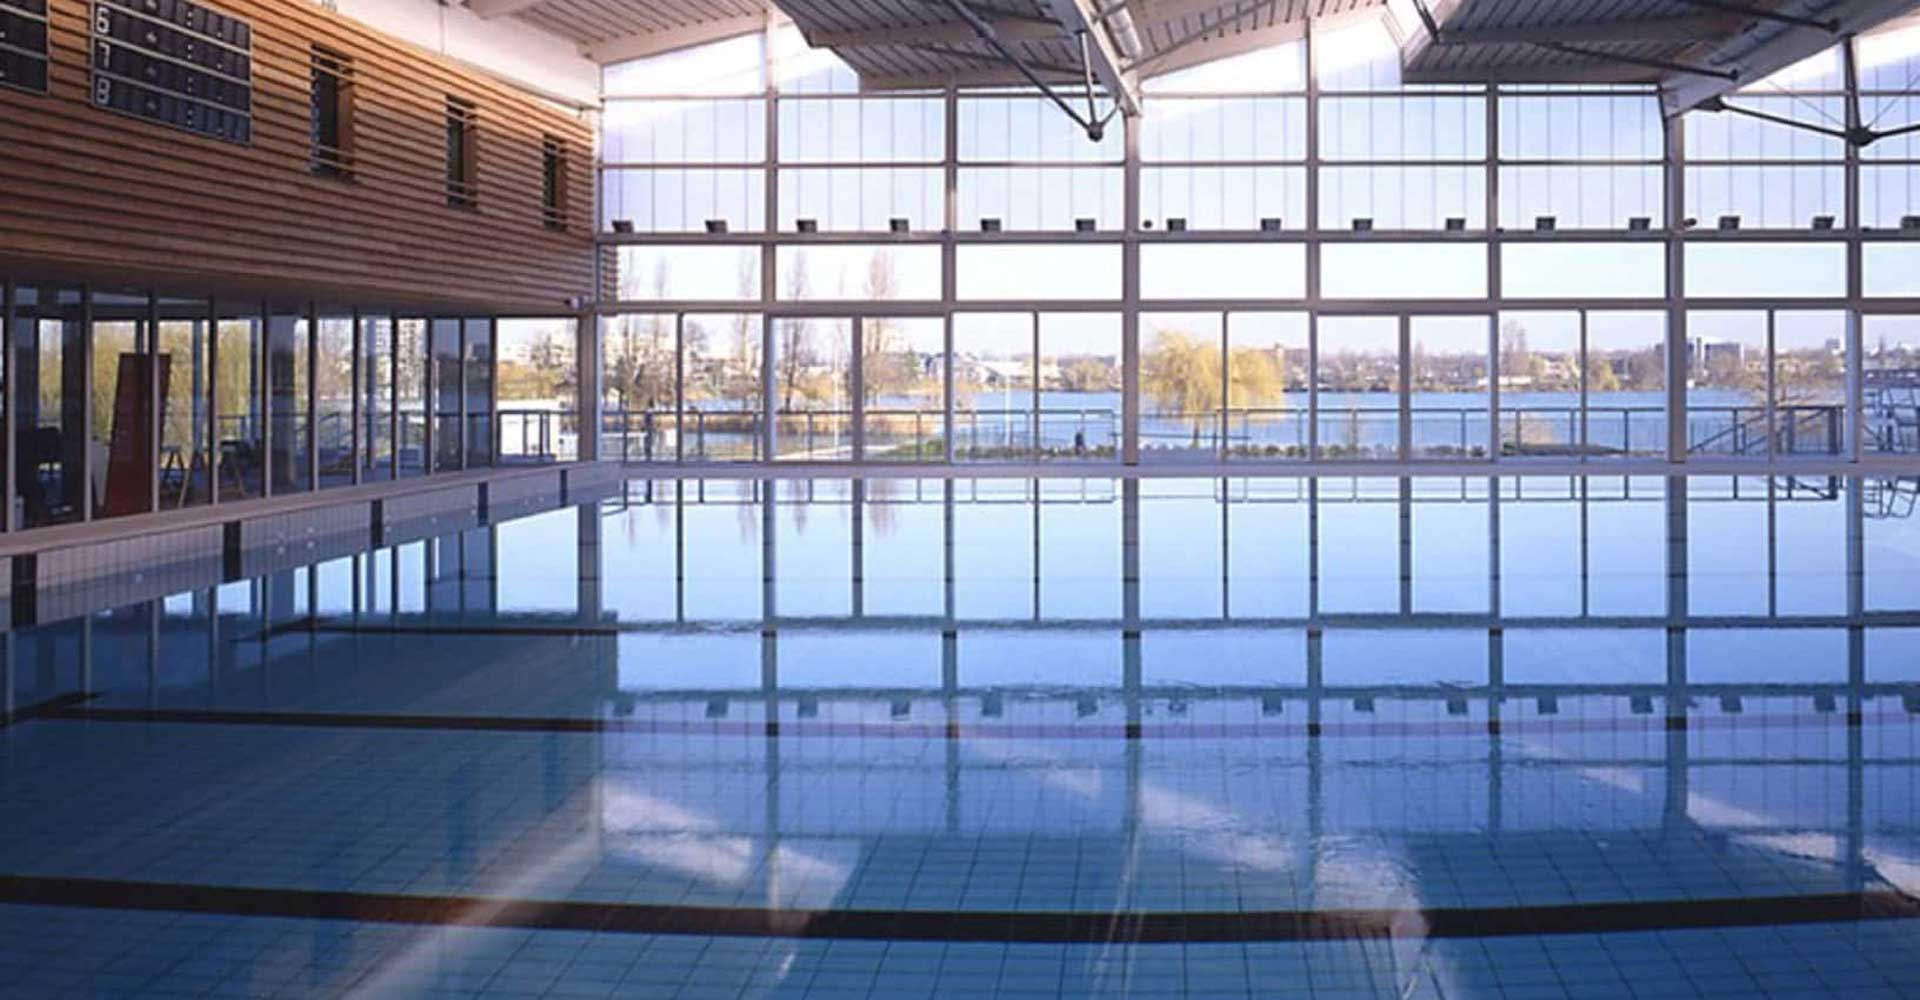 Piscine de Viry-Chatillon